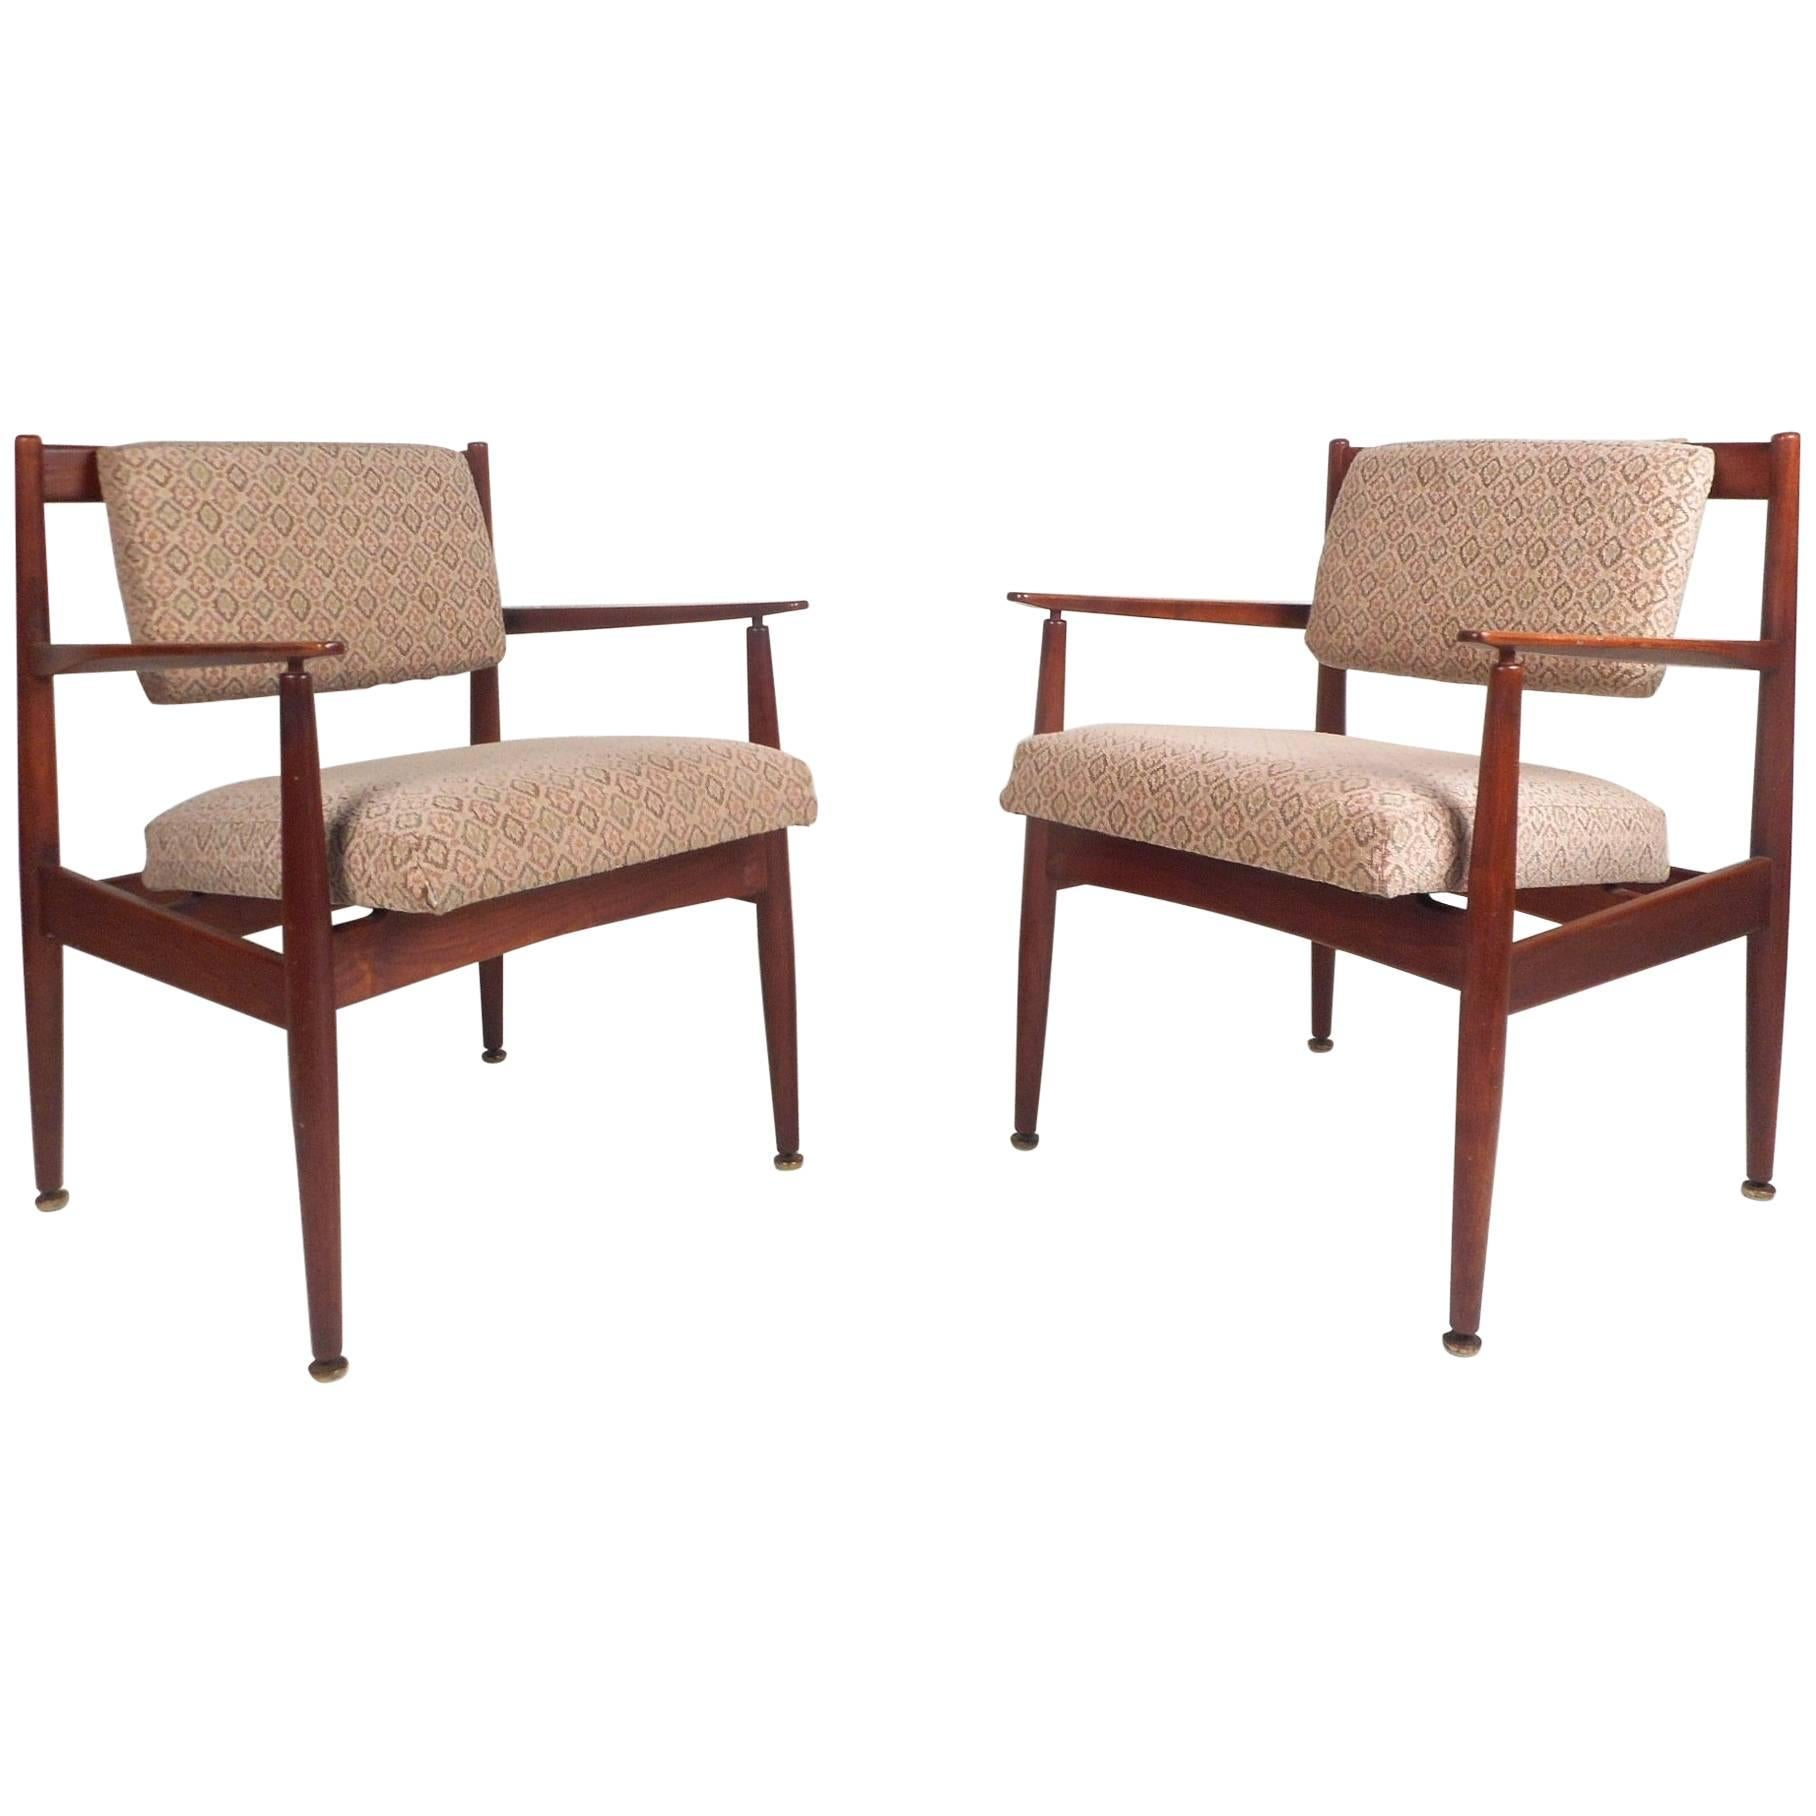 Pair of Vintage Walnut Lounge Chairs by Jens Risom Design